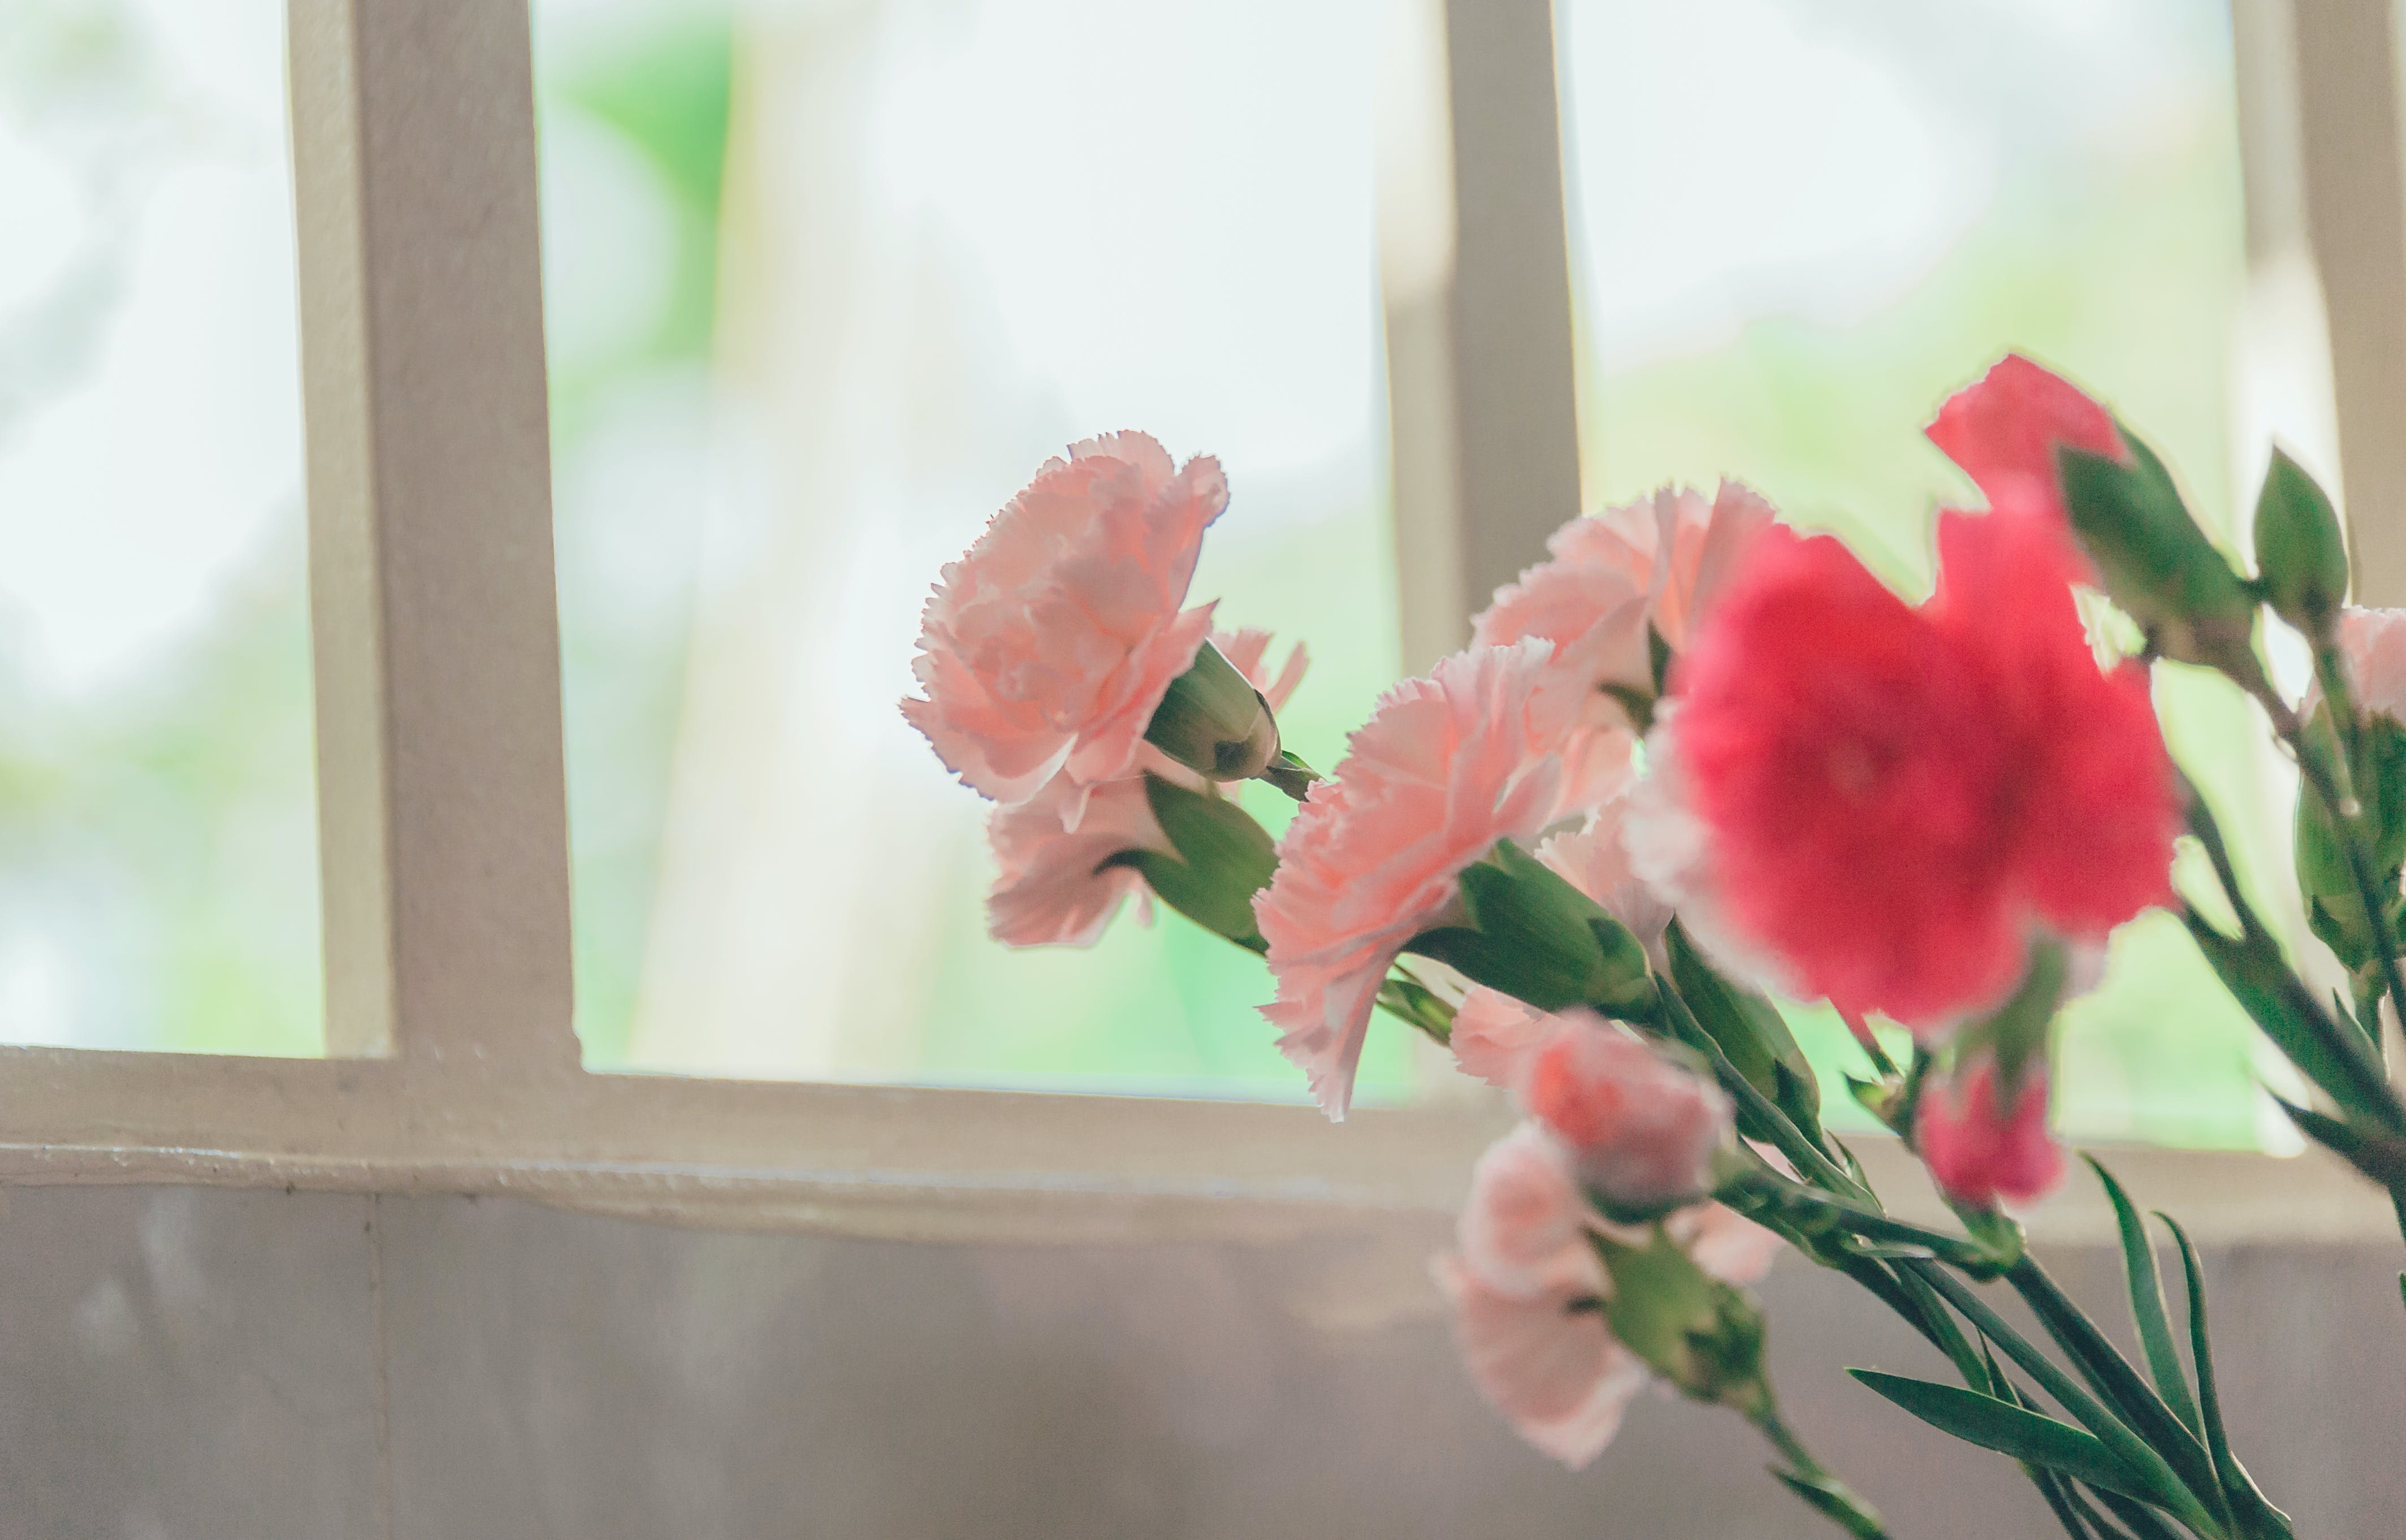 Pink Petaled Flower Near Glass Window